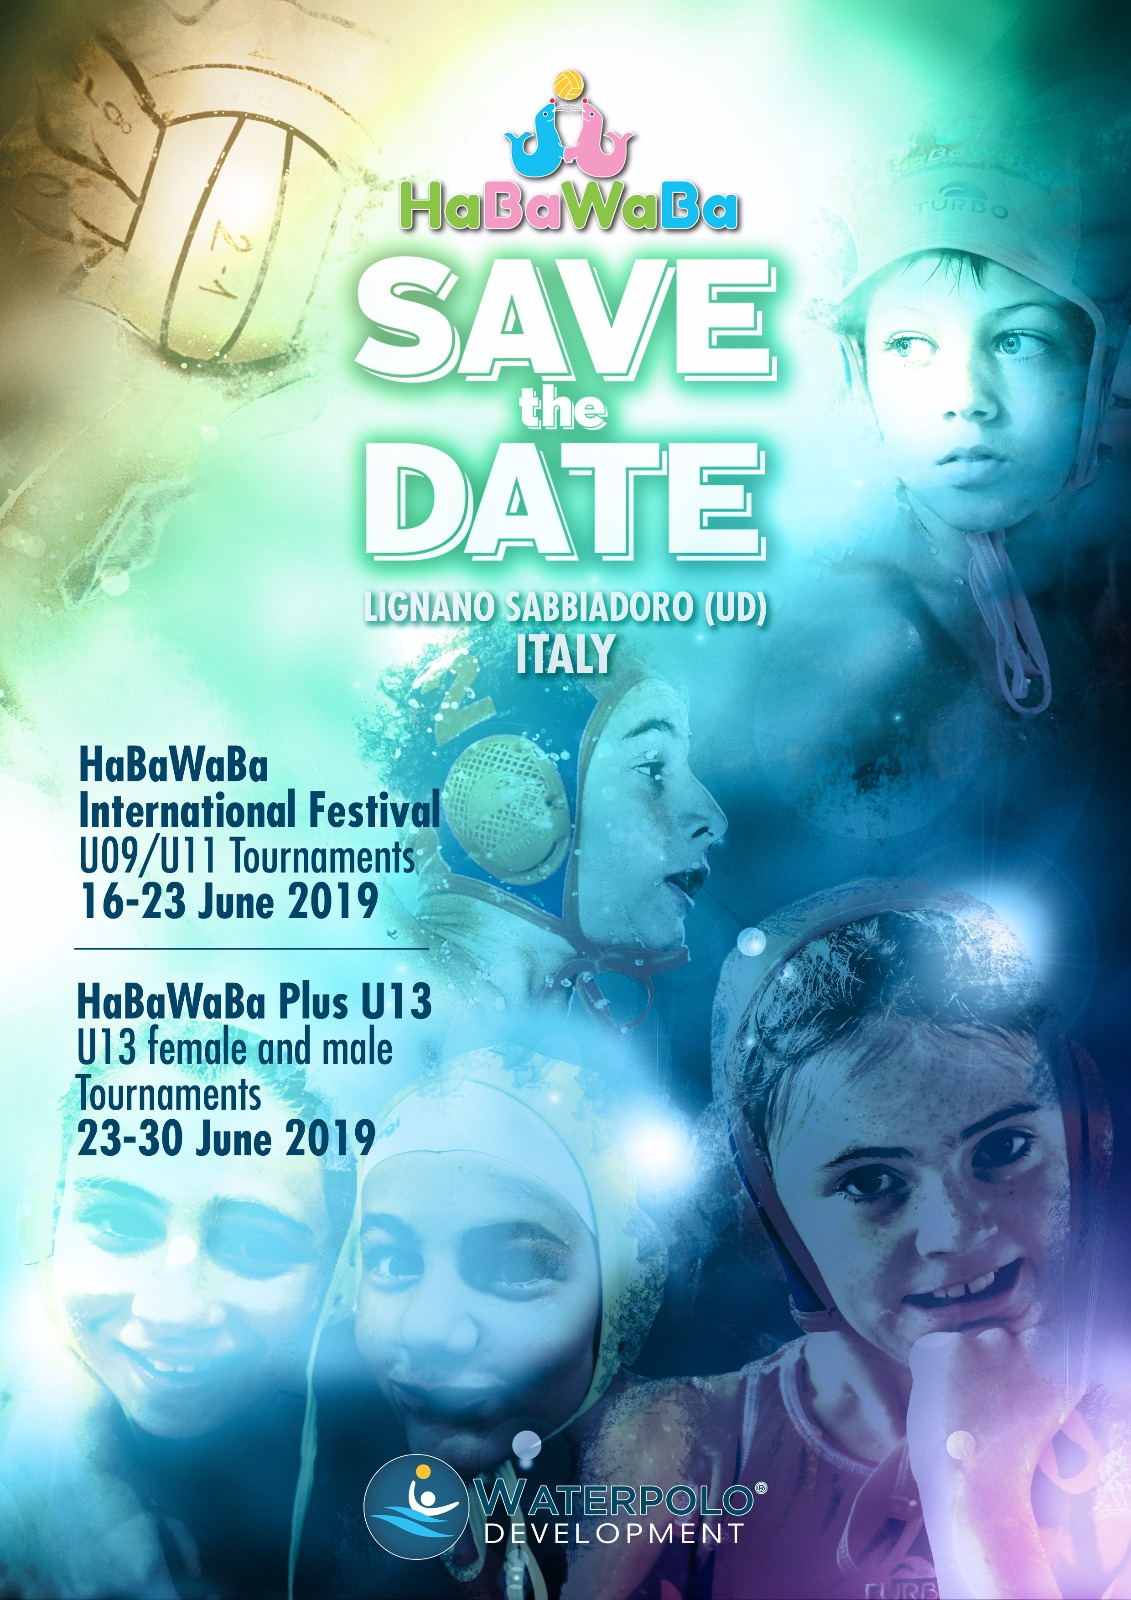 HaBaWaBa 2019 SAVE THE DATE